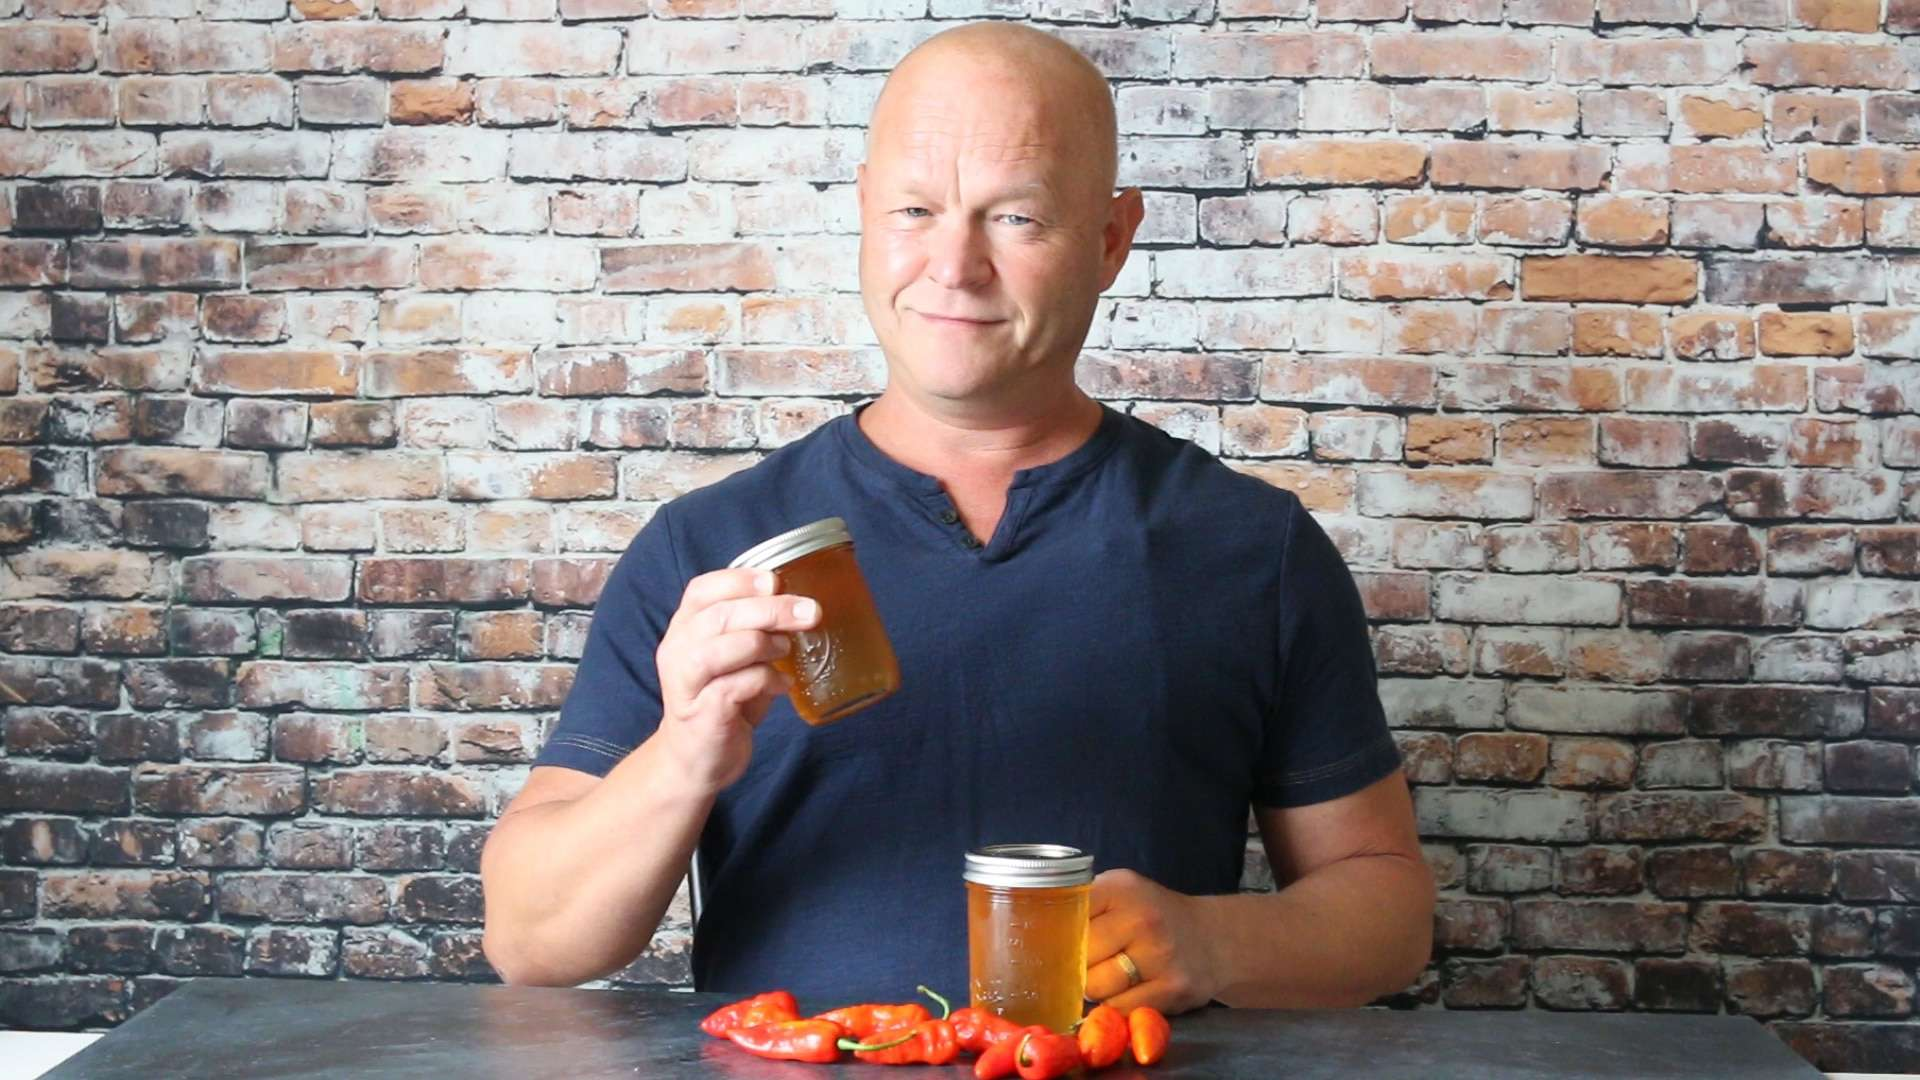 Mike holding his newly made ghost pepper jelly